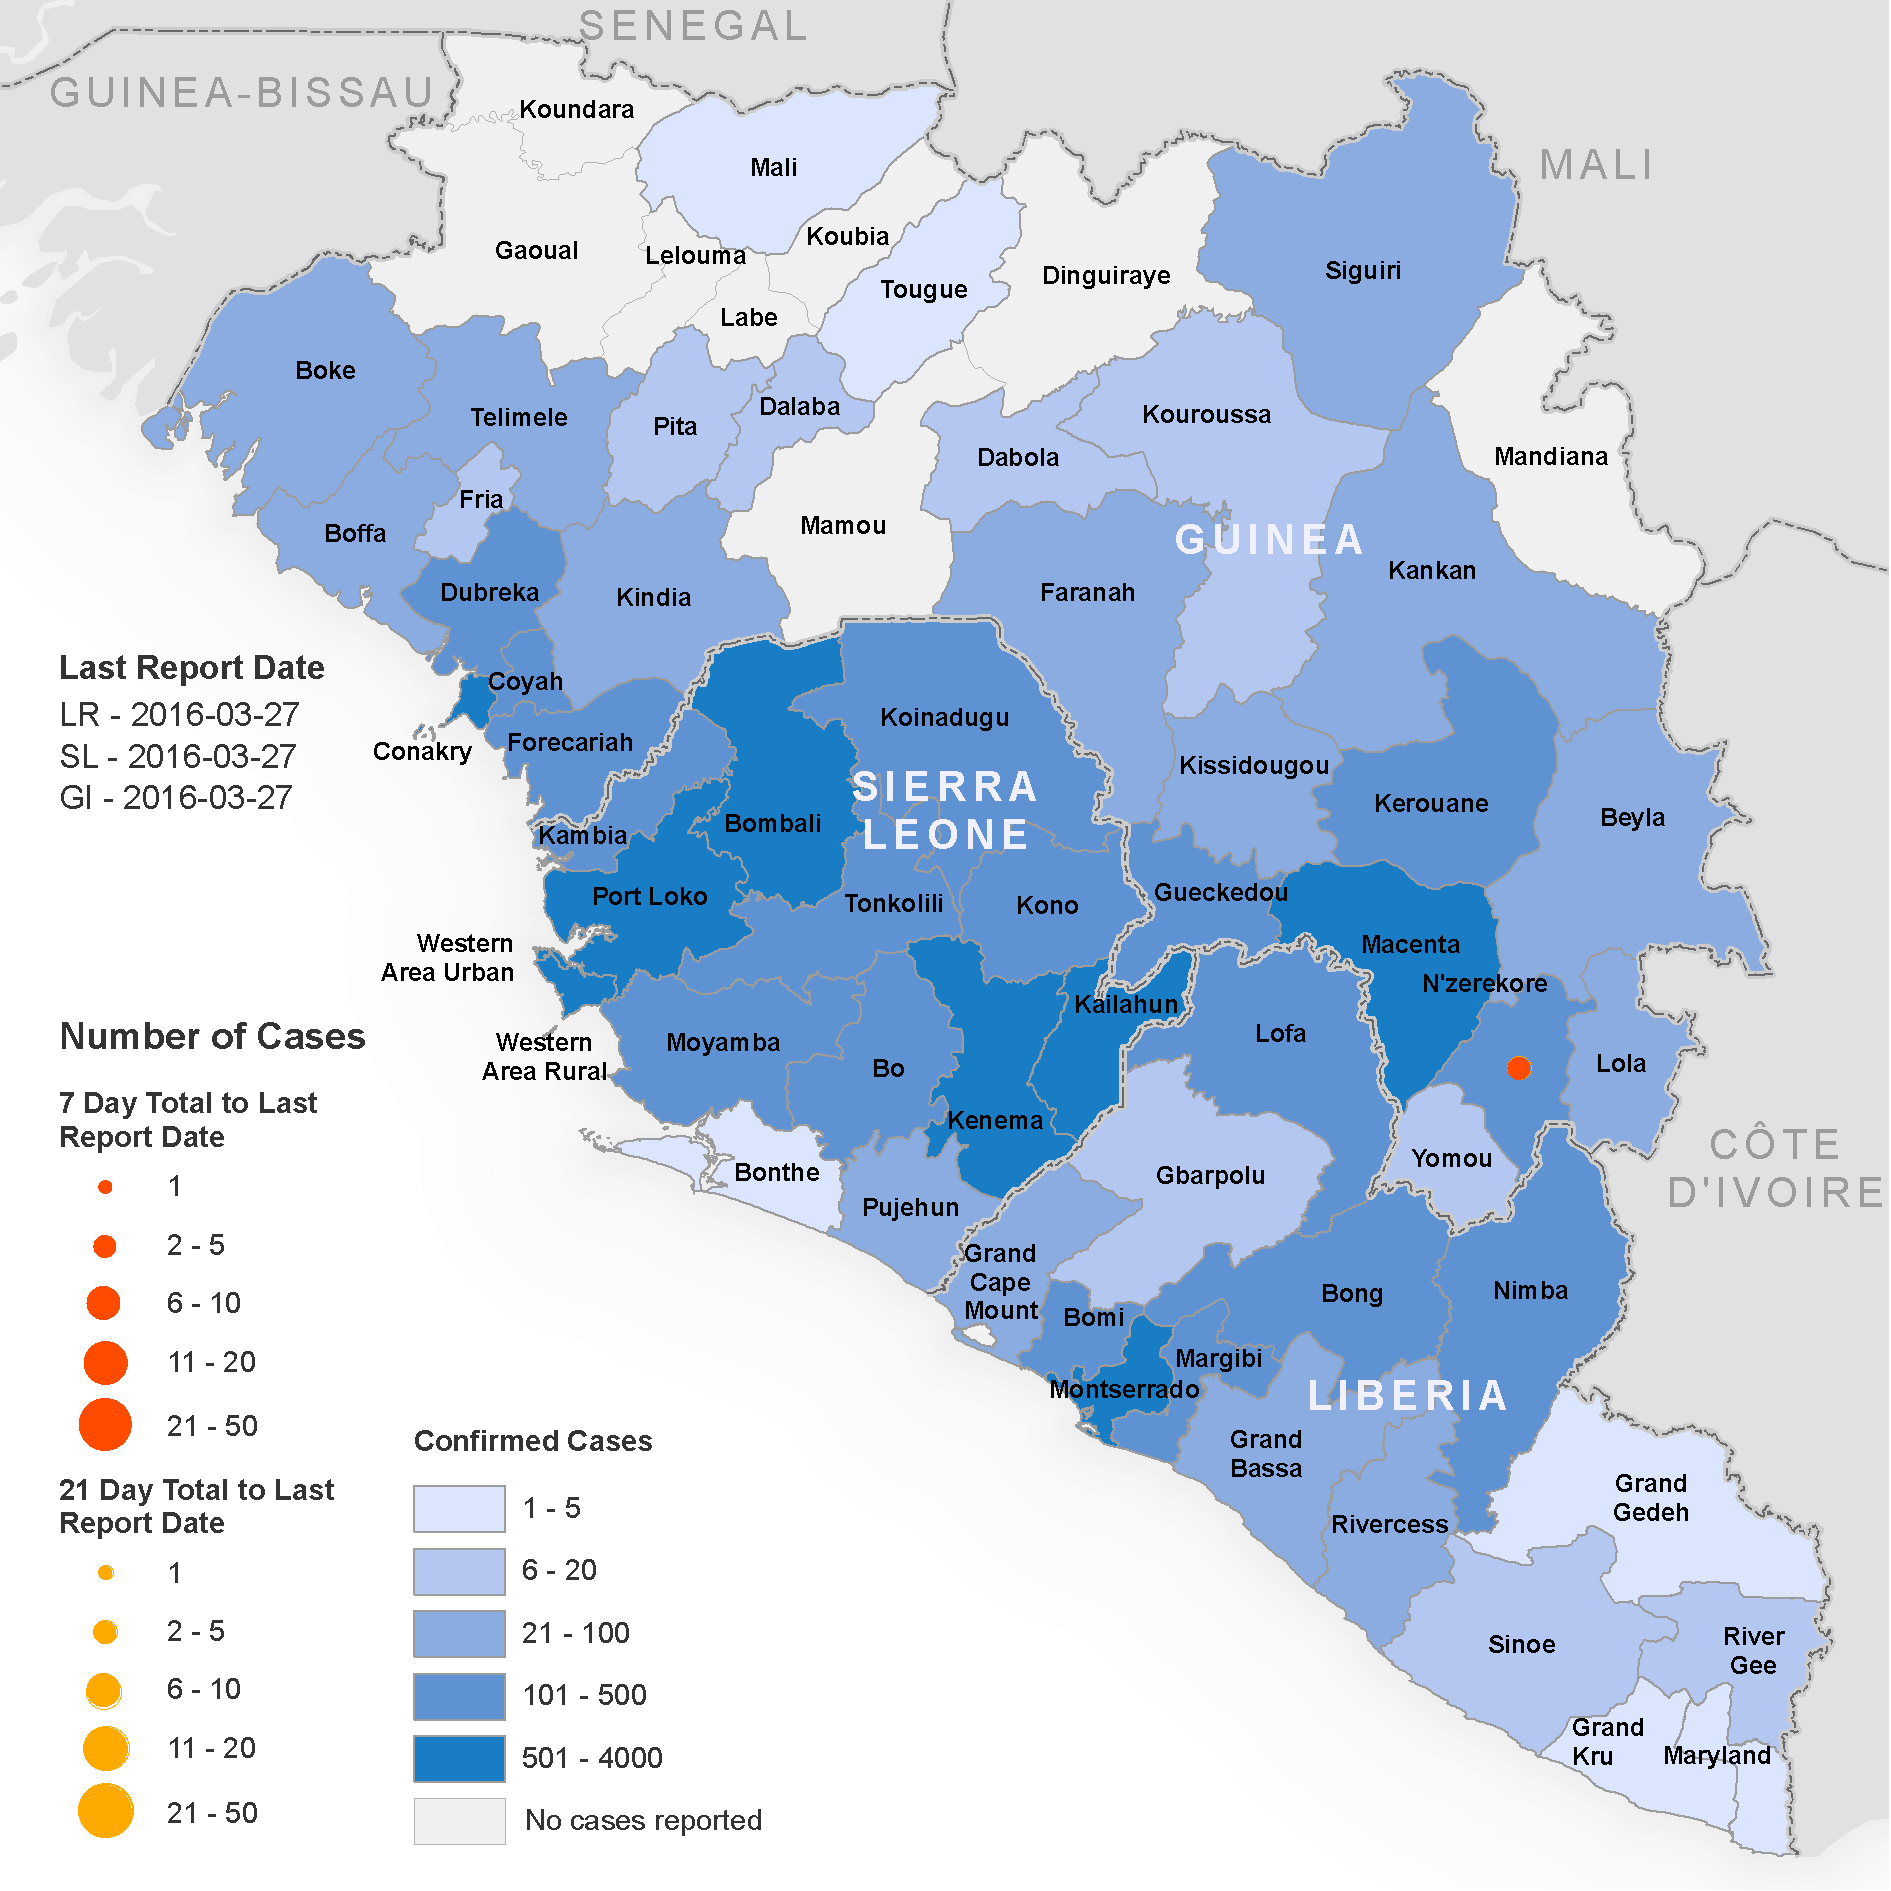 Geographical distribution of new and total confirmed cases of Ebola in West Africa, 2016   Source:  World Health Organization (WHO)